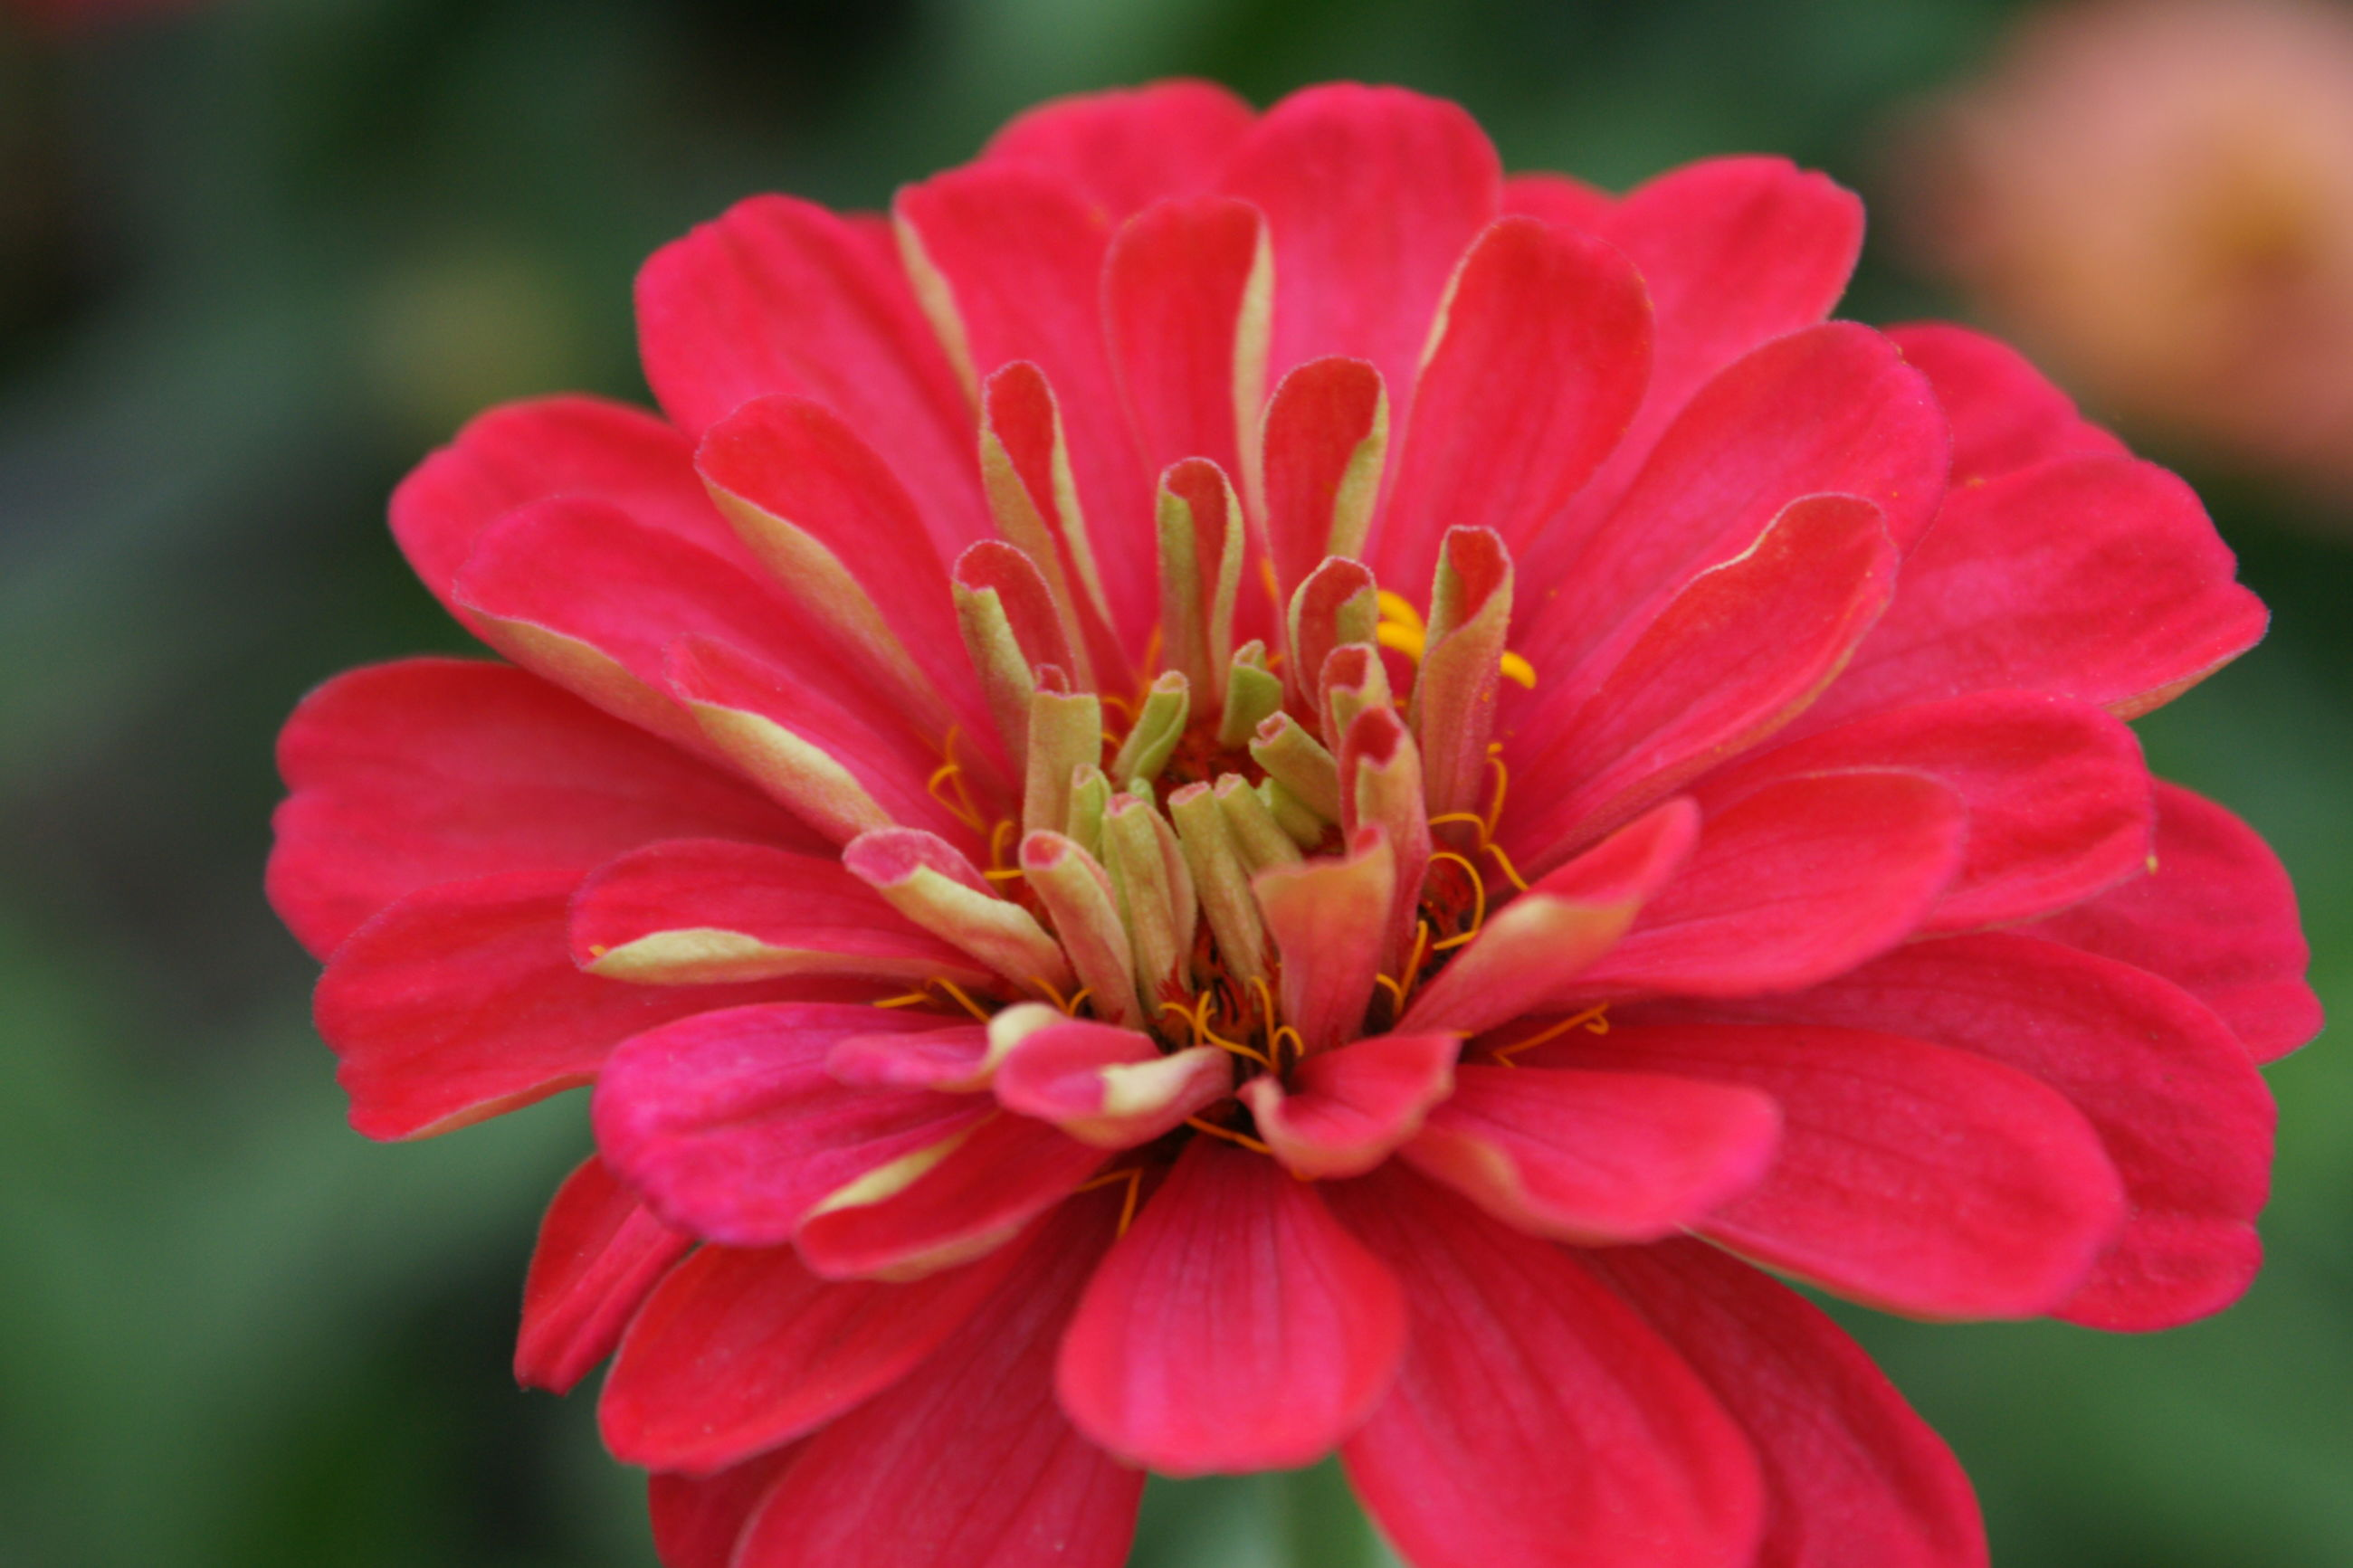 flower, petal, nature, beauty in nature, fragility, freshness, flower head, growth, close-up, focus on foreground, pink color, pollen, blooming, outdoors, zinnia, day, no people